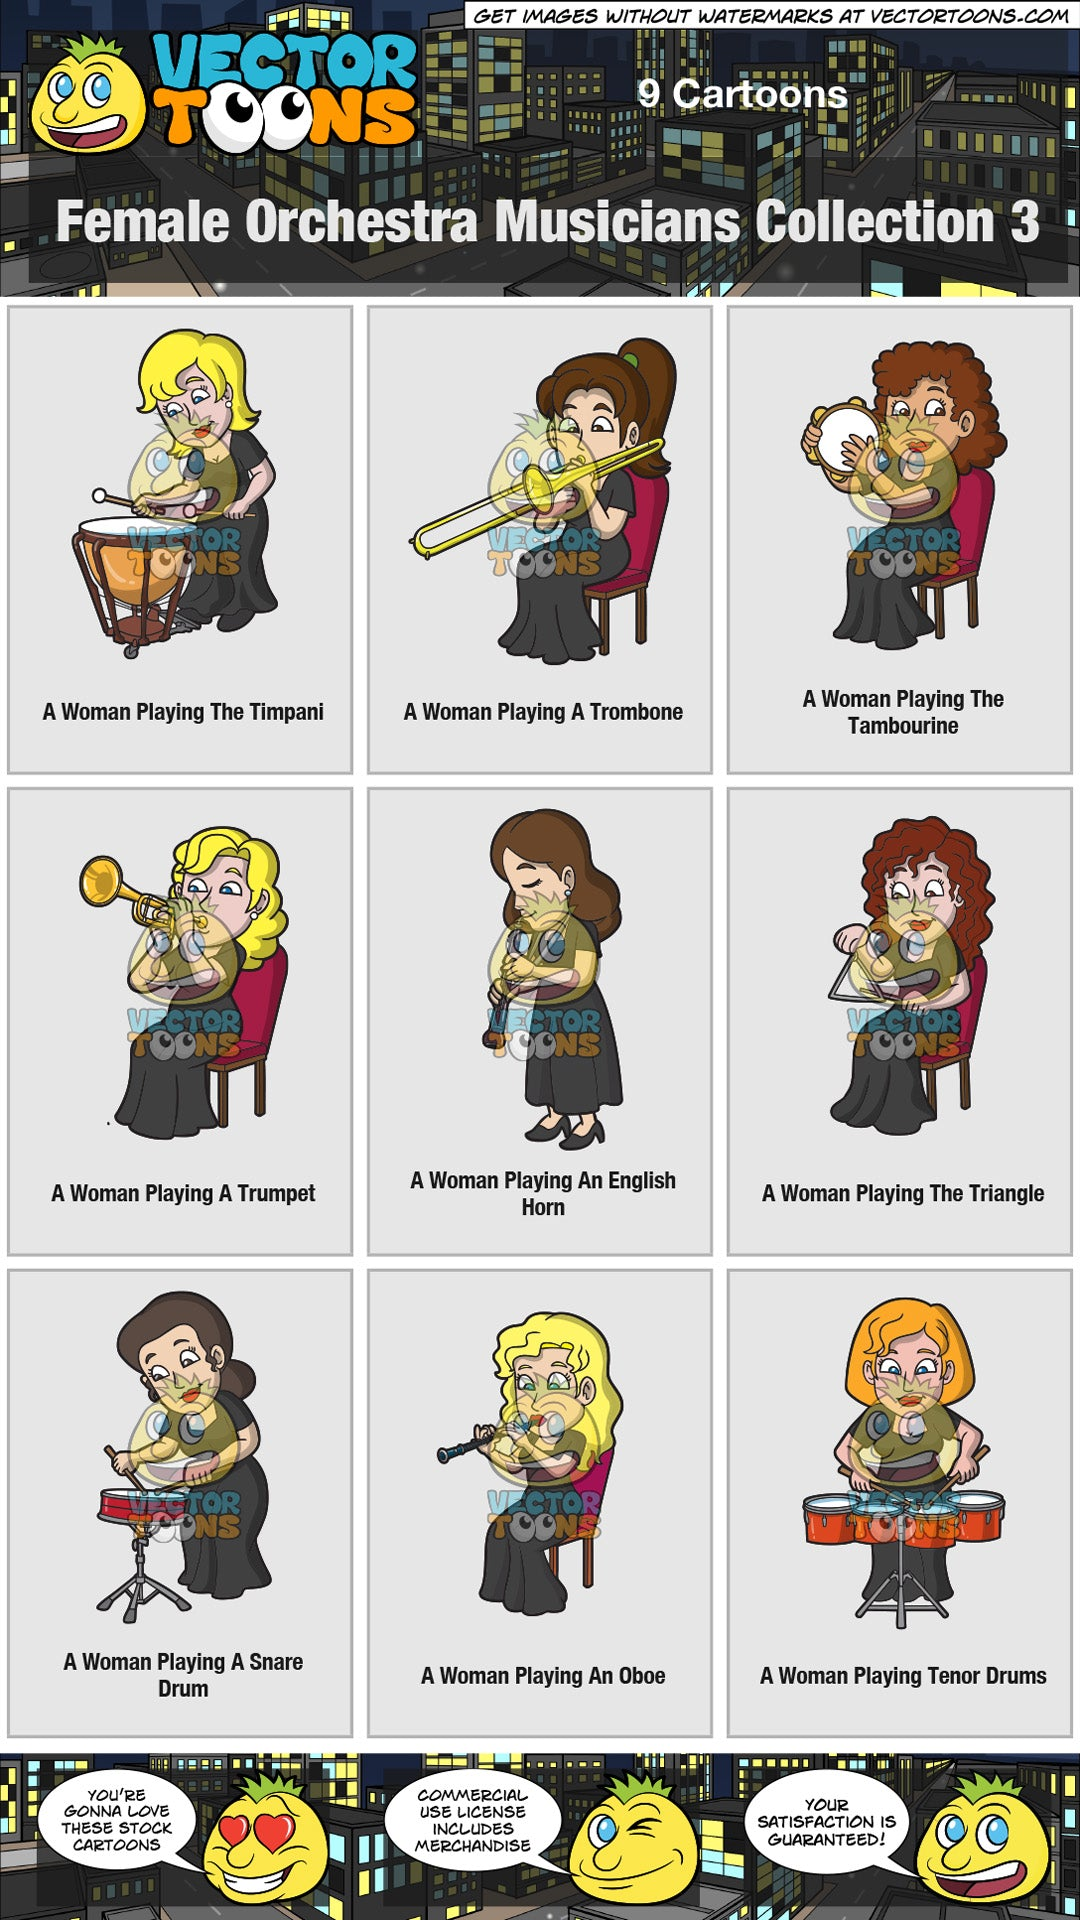 Female Orchestra Musicians Collection 3